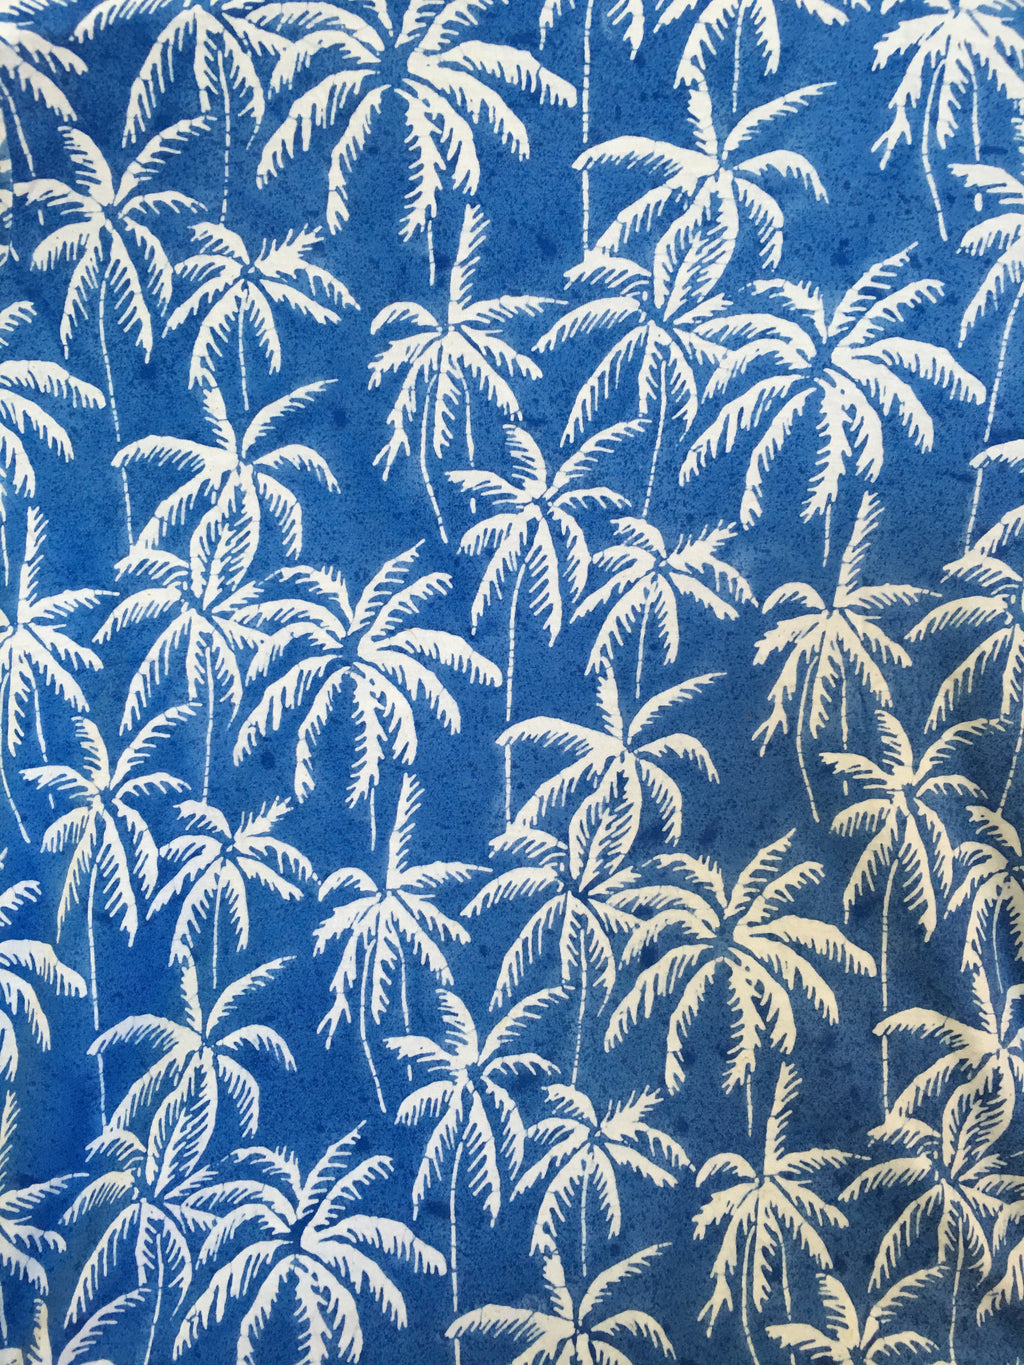 Nusa Lembongan Dress - Tall Palms